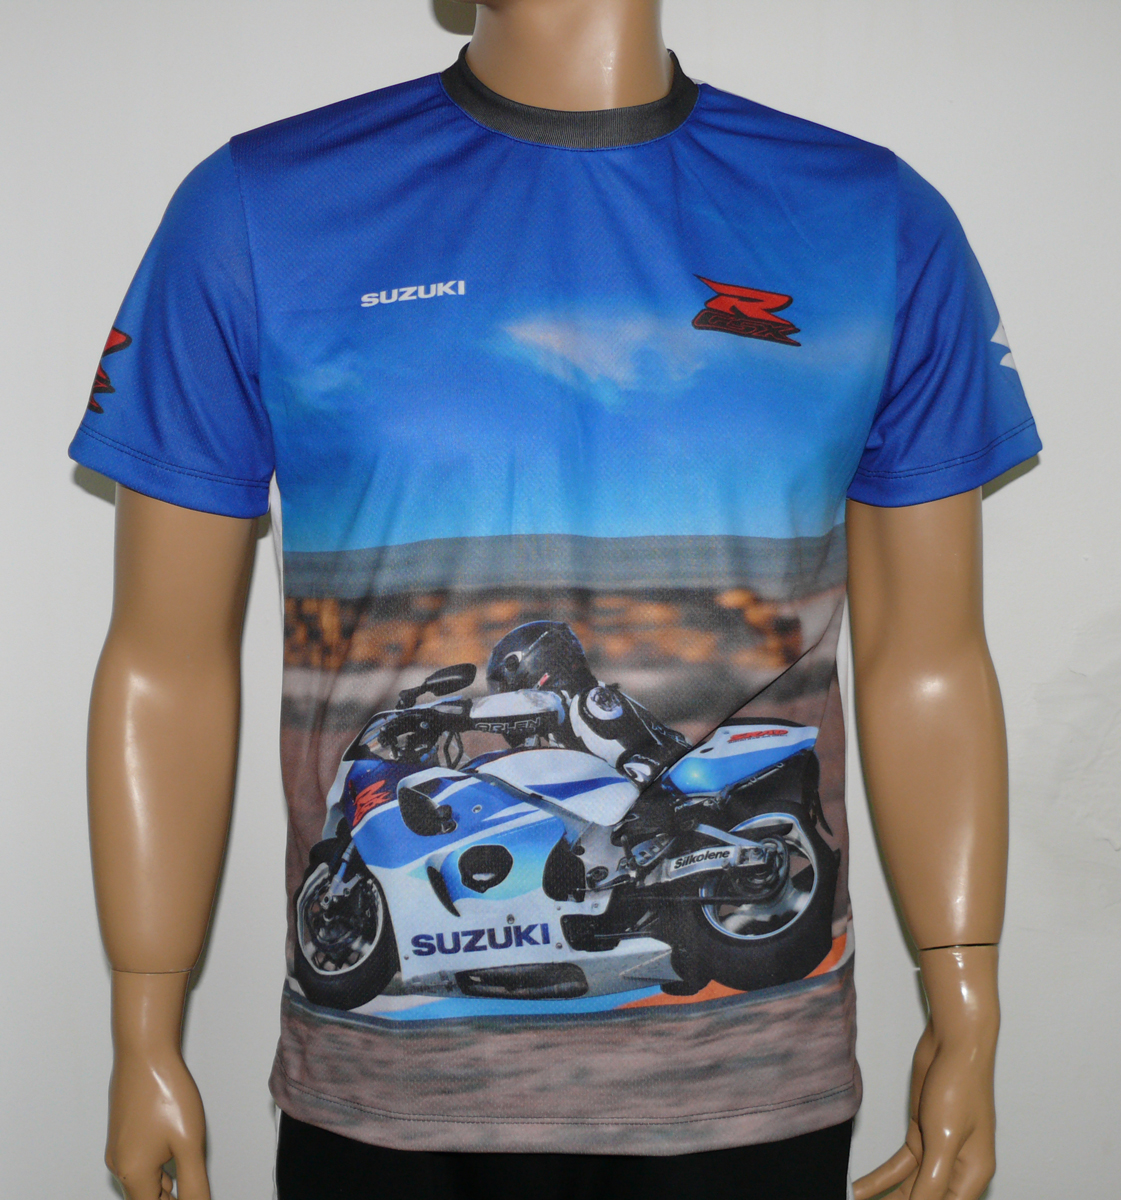 suzuki srad t-shirt with logo and all-over printed picture - t